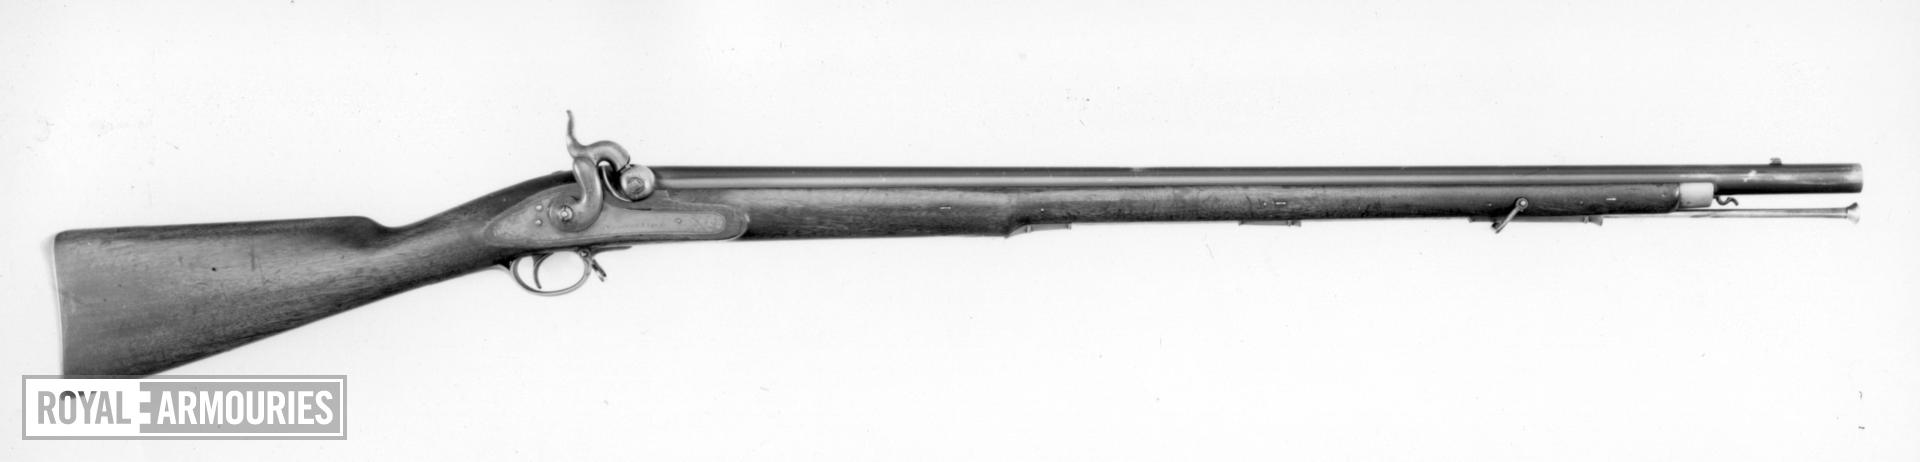 Percussion muzzle-loading military musket - By Wilkinson and Son